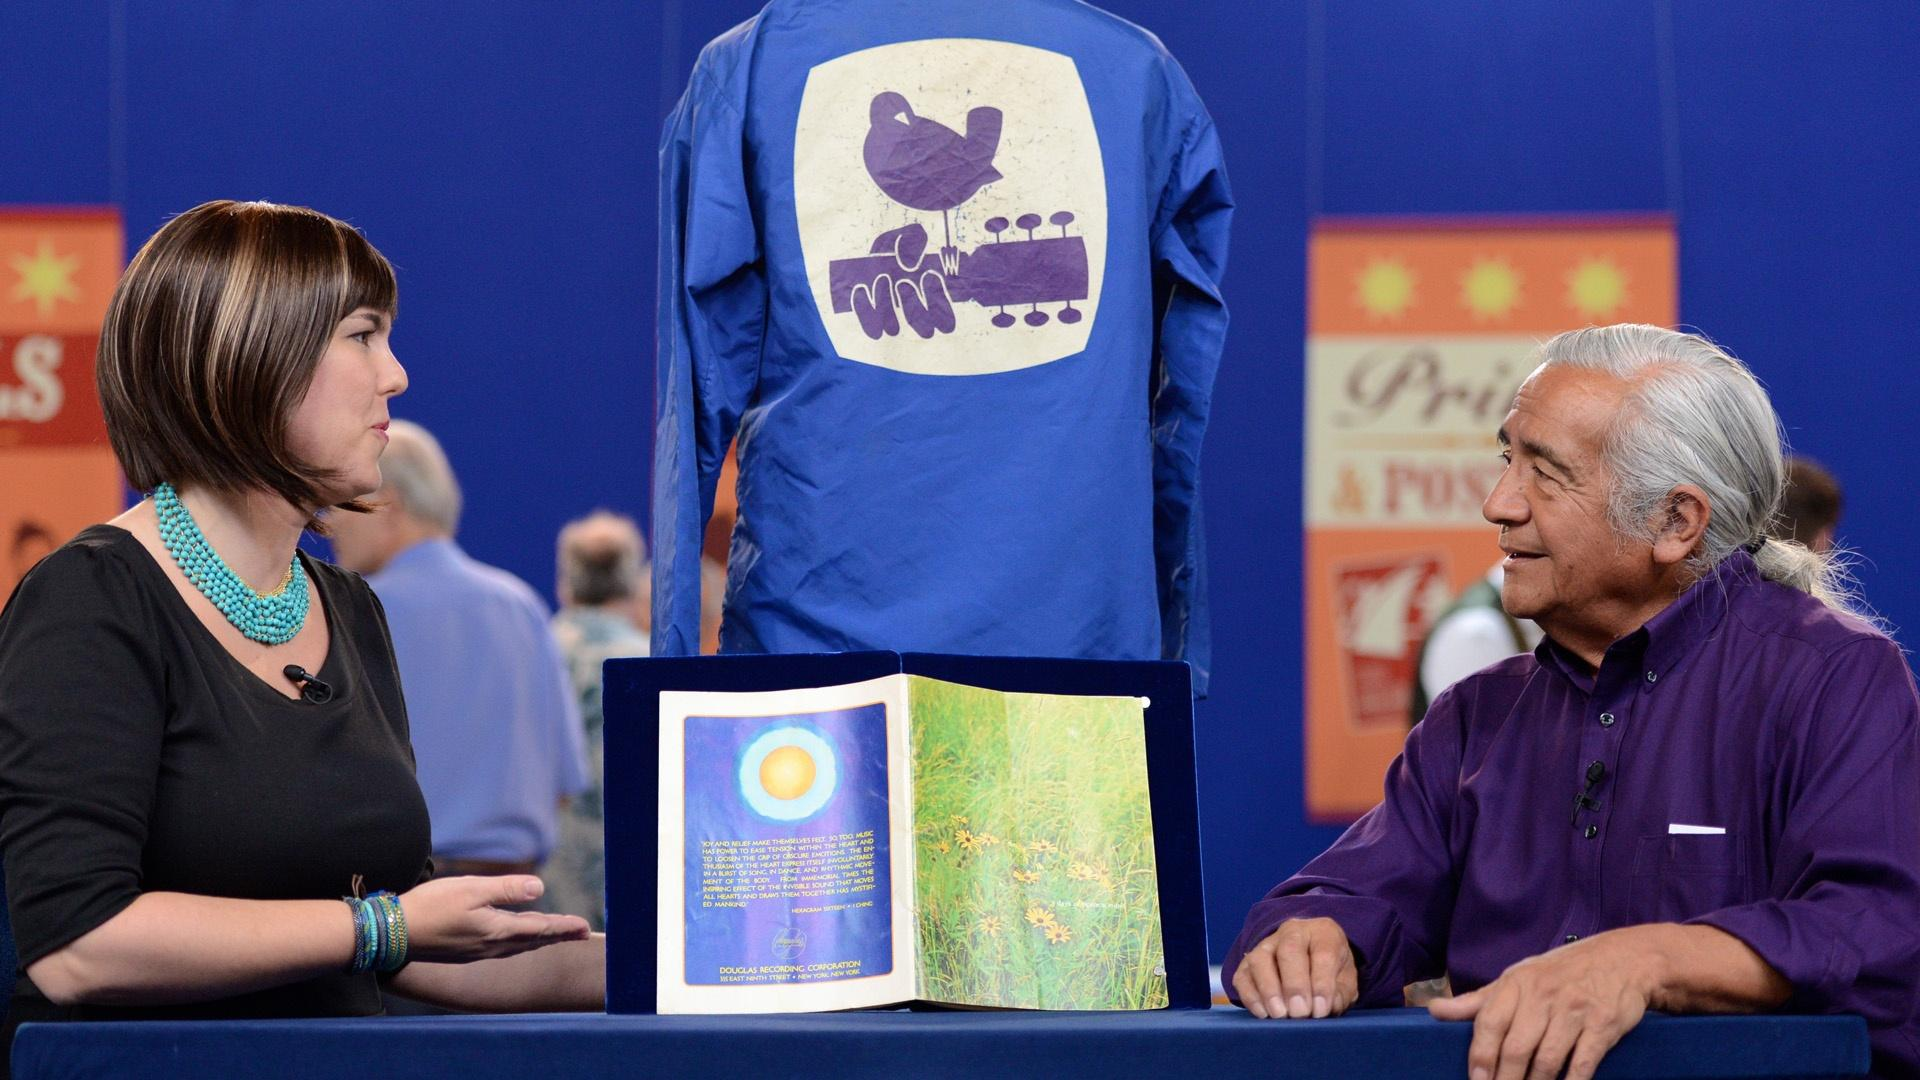 watch full episodes online of antiques roadshow on pbs